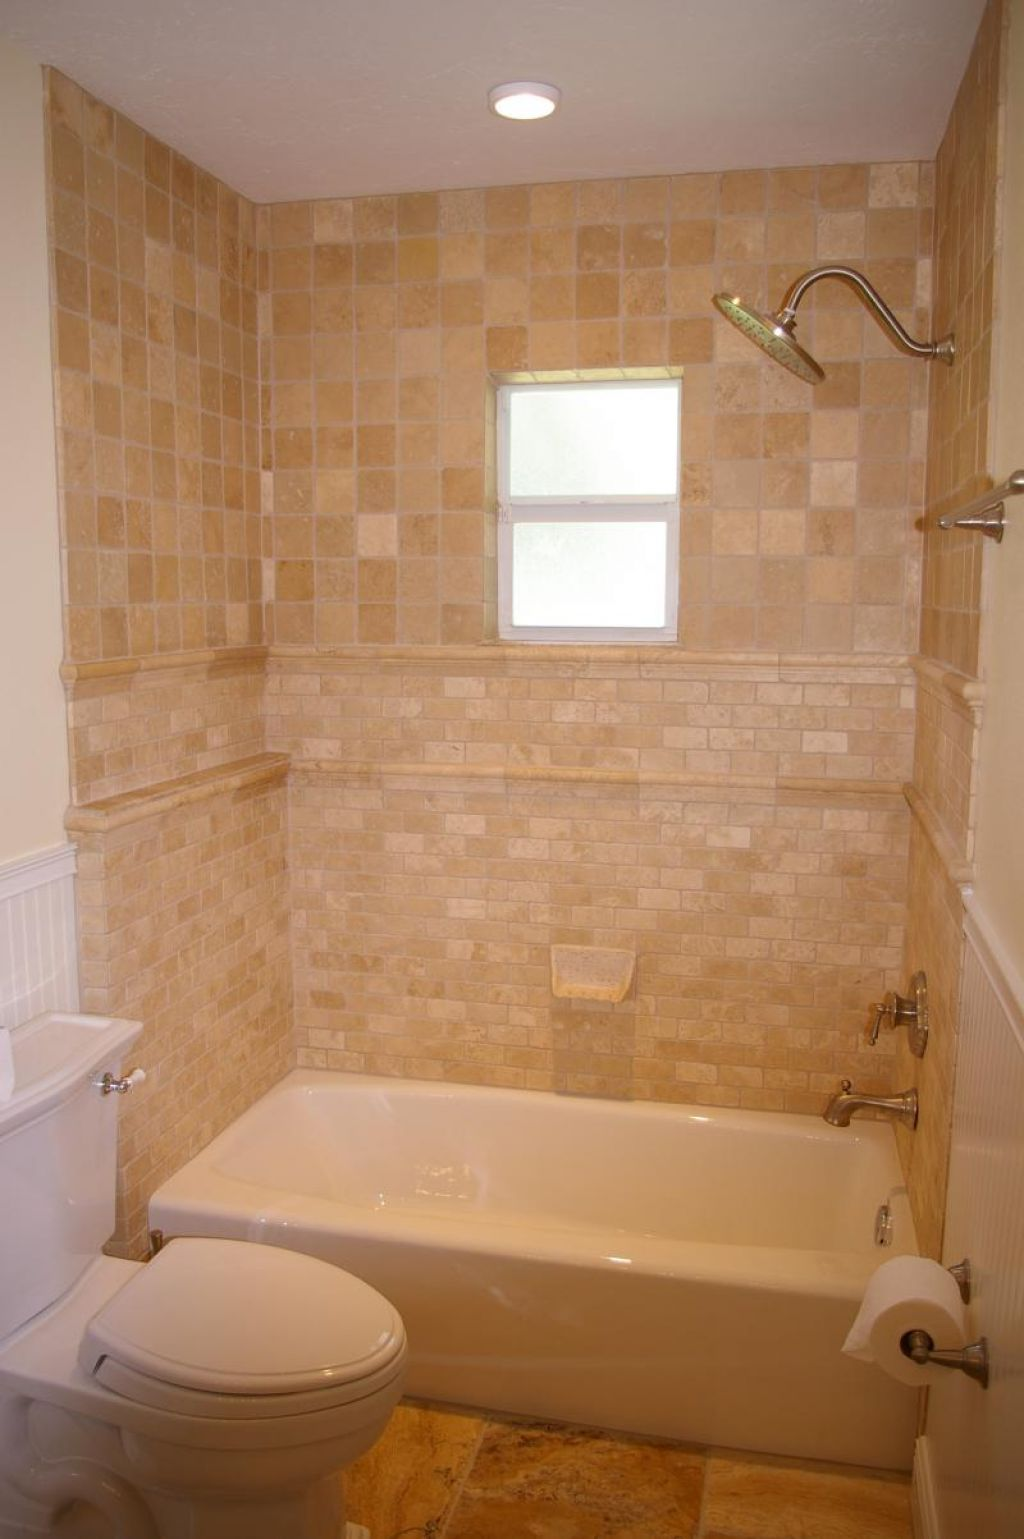 30 shower tile ideas on a budget Smallest bath tub